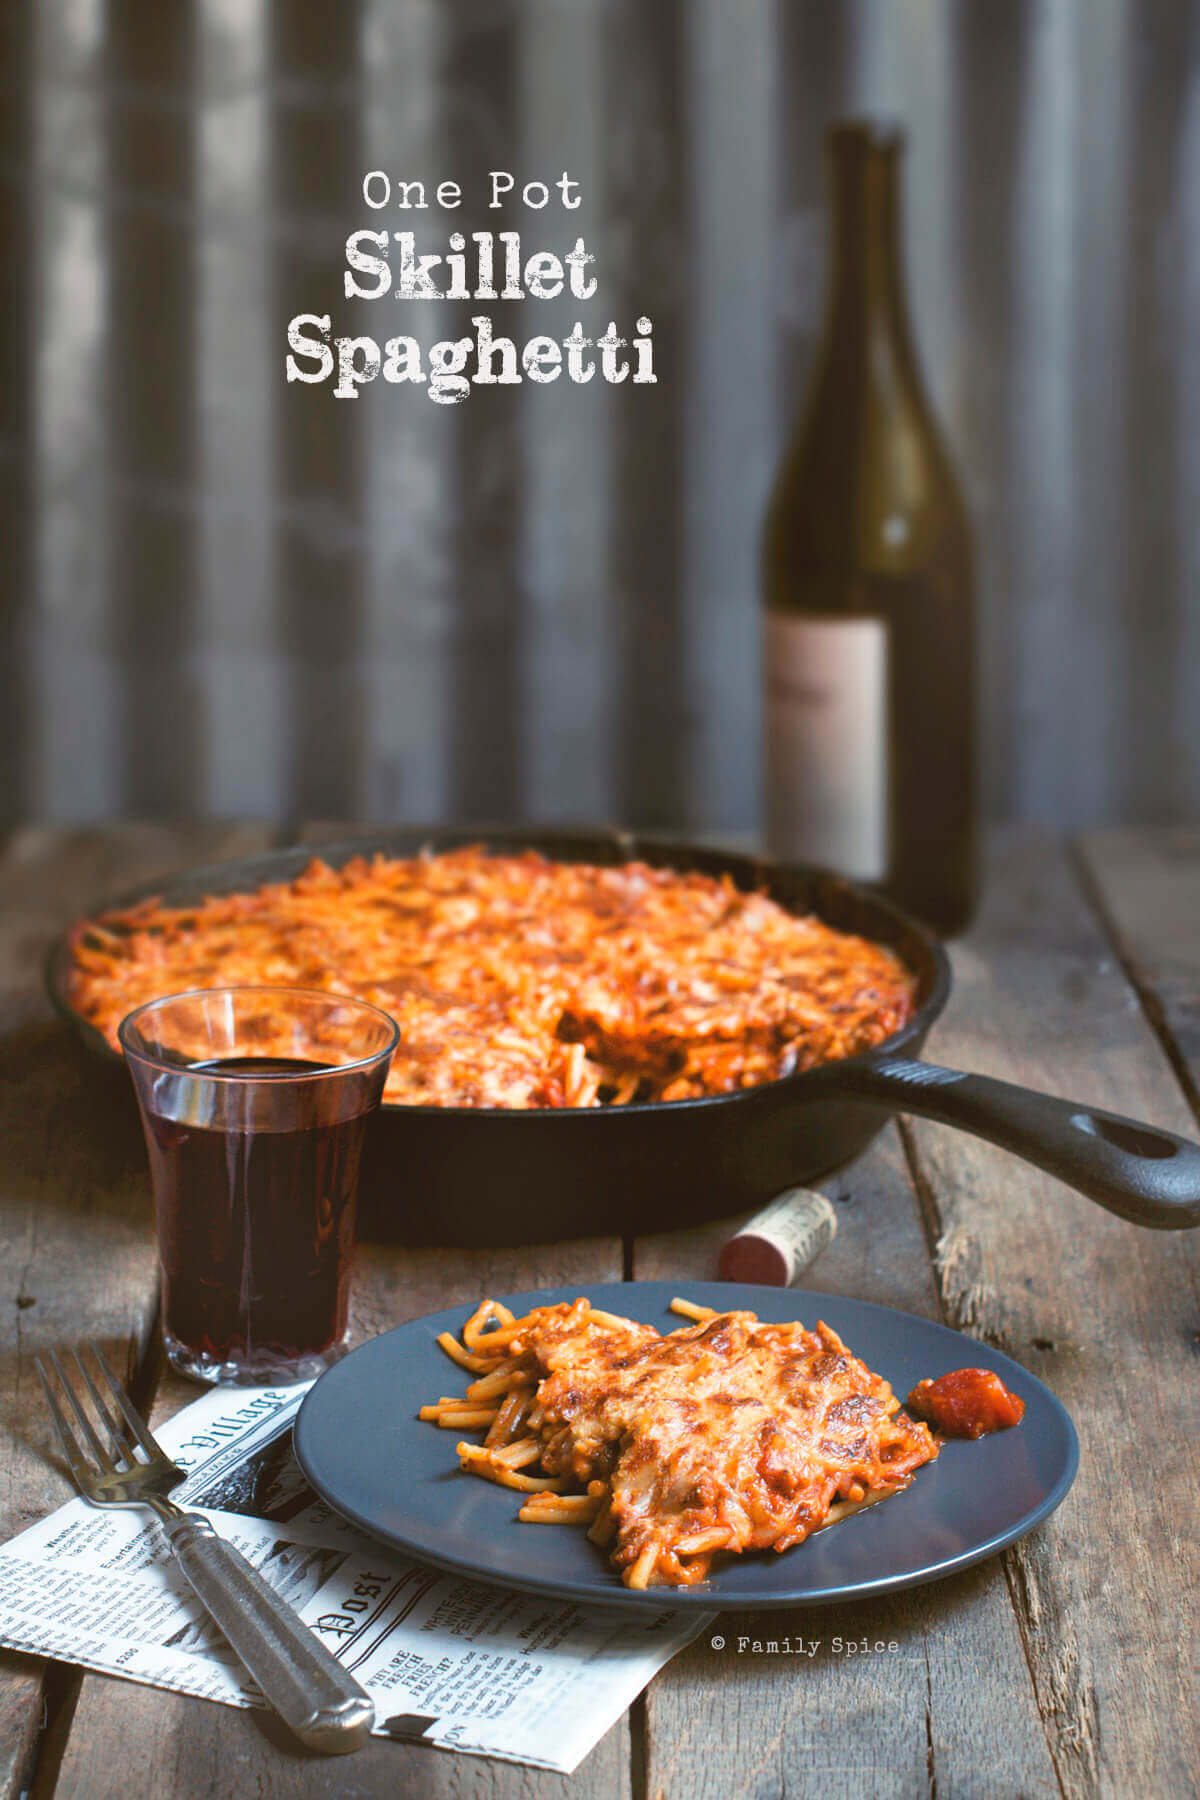 Cast iron skillet with baked spaghetti by FamilySpice.com